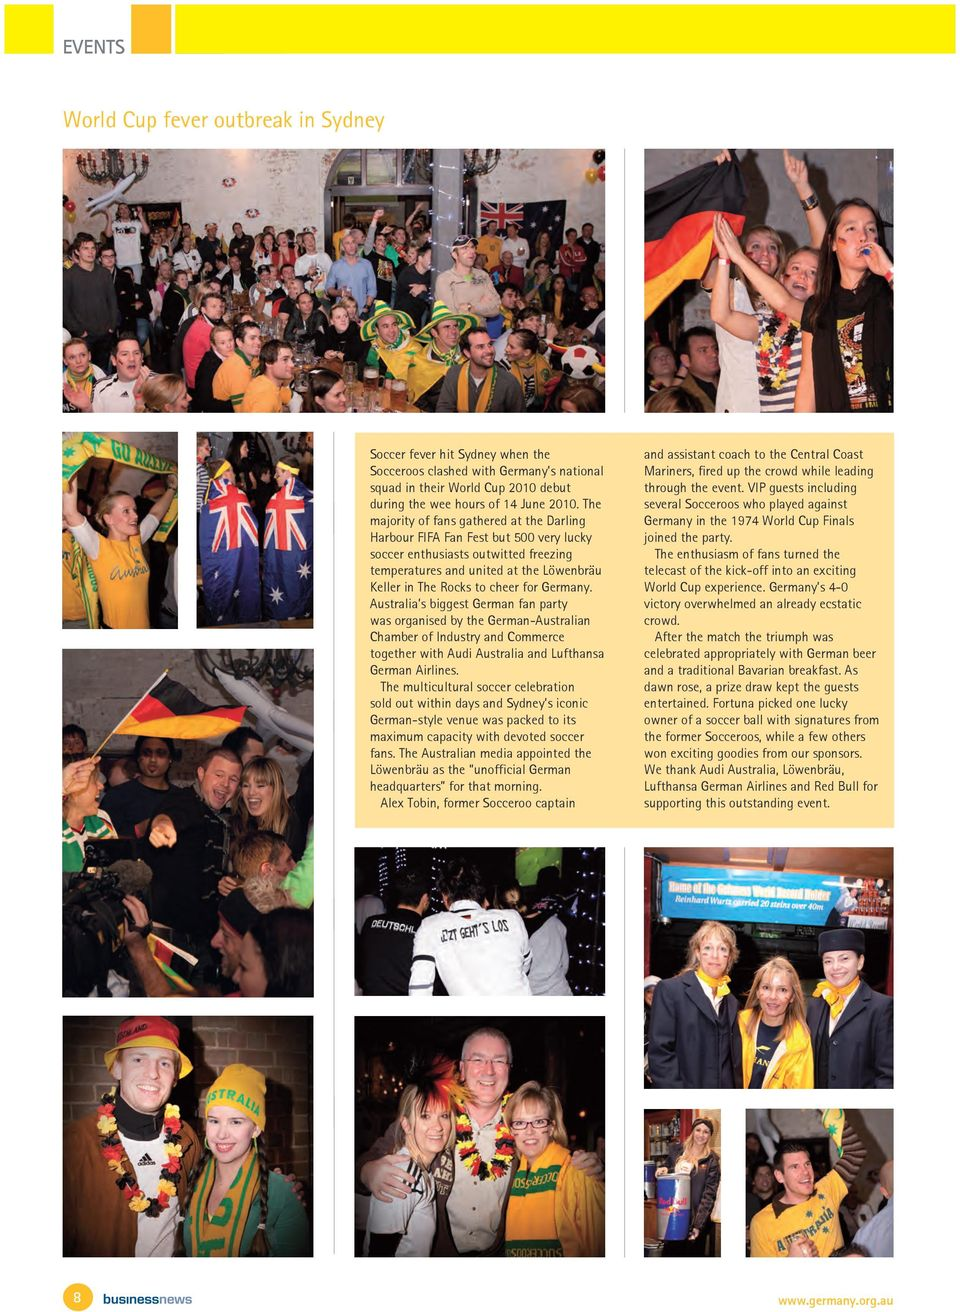 Germany. Australia s biggest German fan party was organised by the German-Australian Chamber of Industry and Commerce together with Audi Australia and Lufthansa German Airlines.